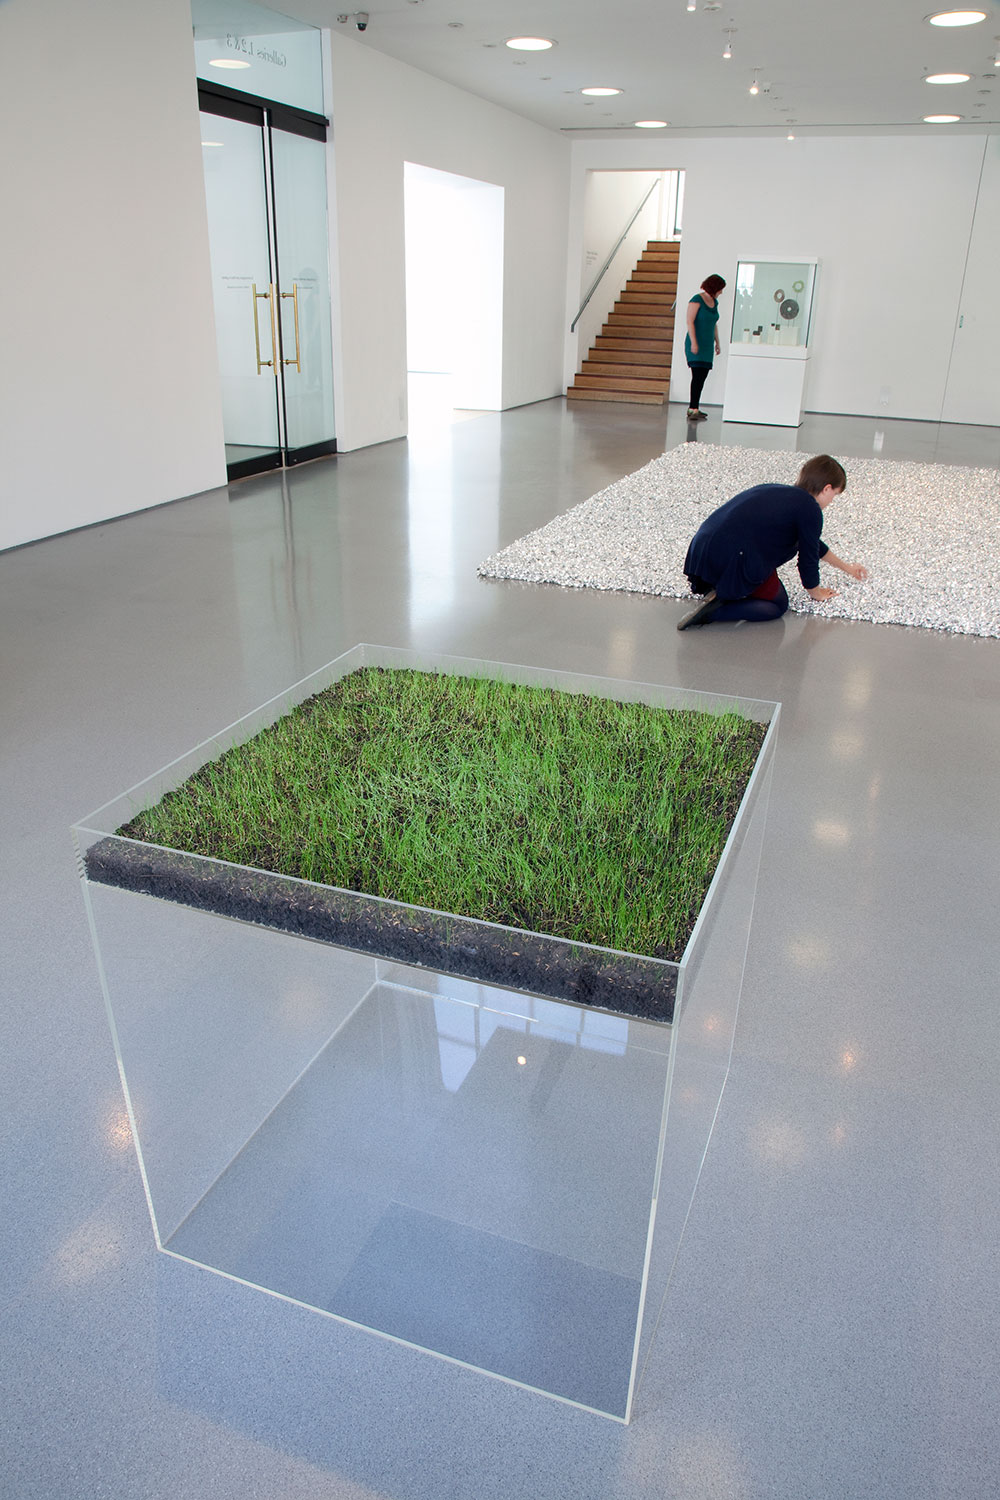 Installation view of Gallery 1, showing Hans Haacke's 'Grass Cube' (1967, acrylic plastic, earth, fescue grass, water)